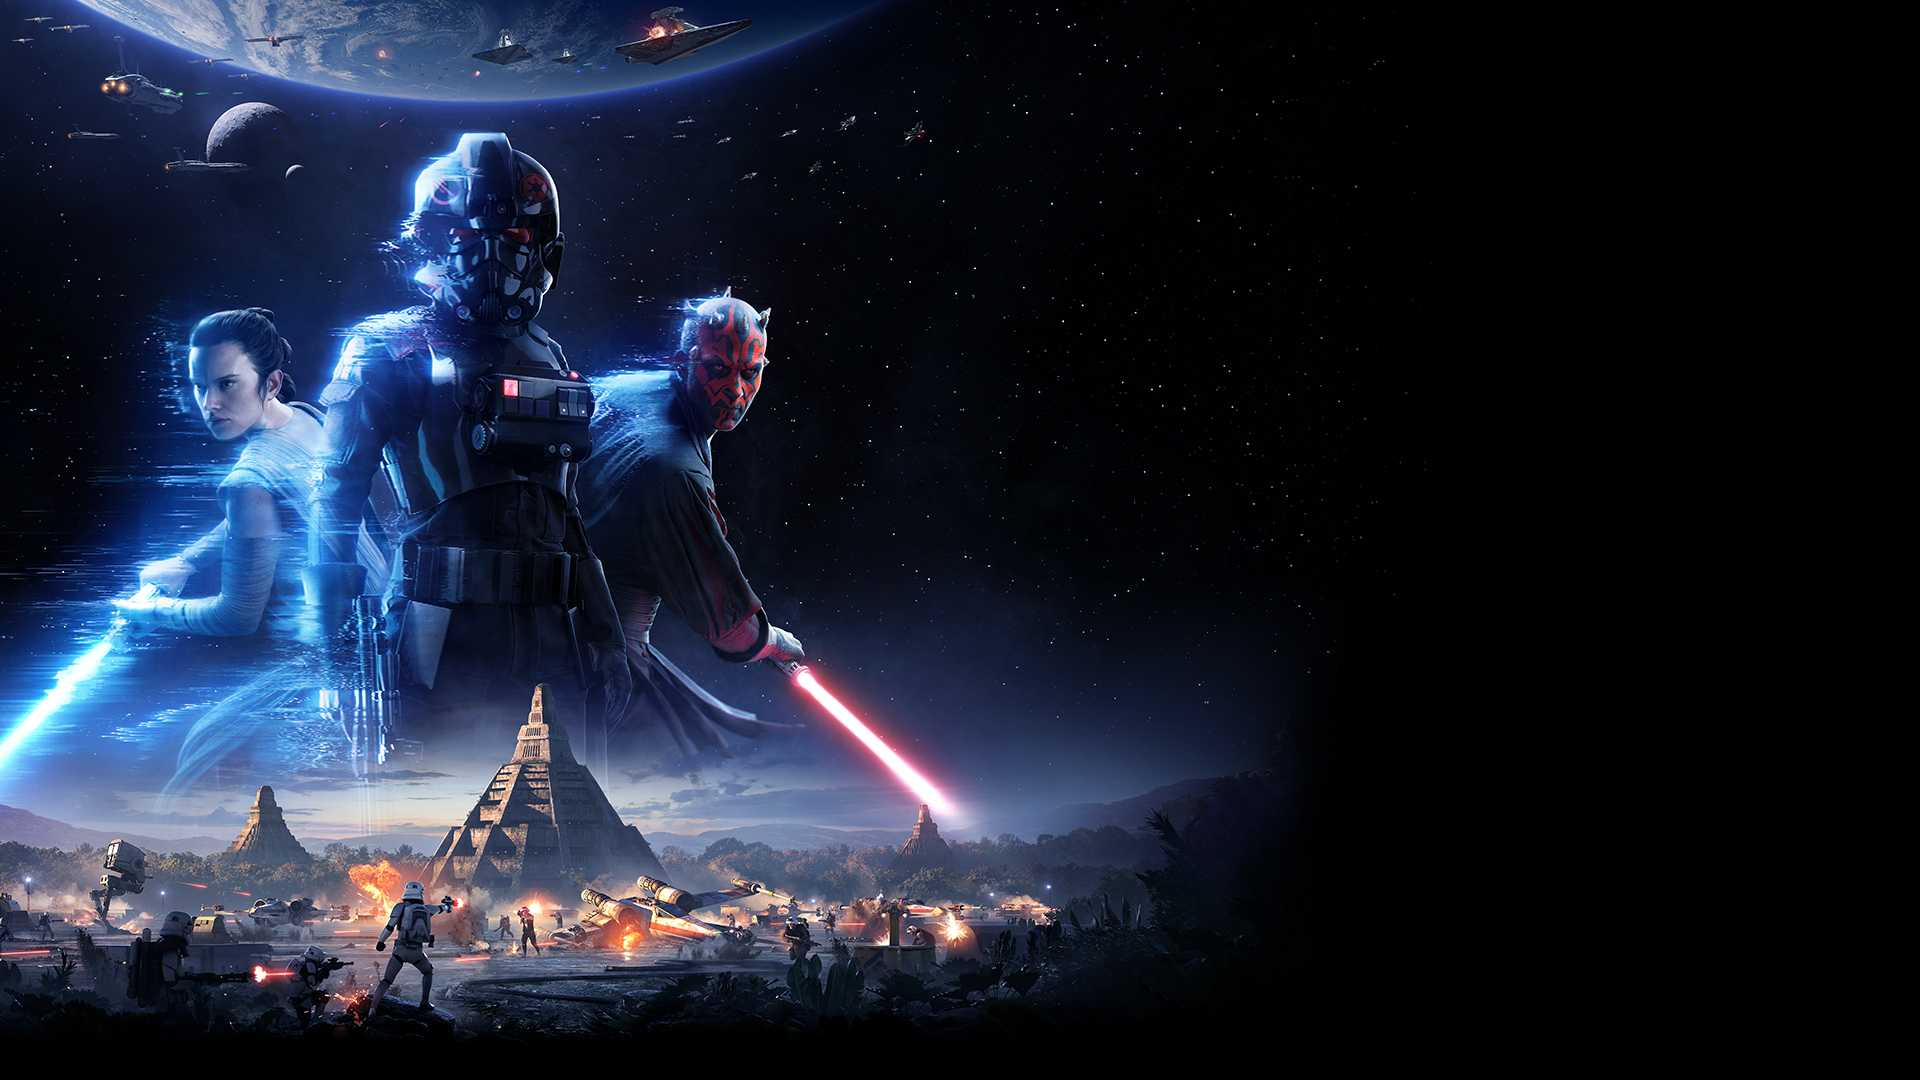 Star Wars Battlefront II: The Last Jedi Season Content Coming In December, Full Details